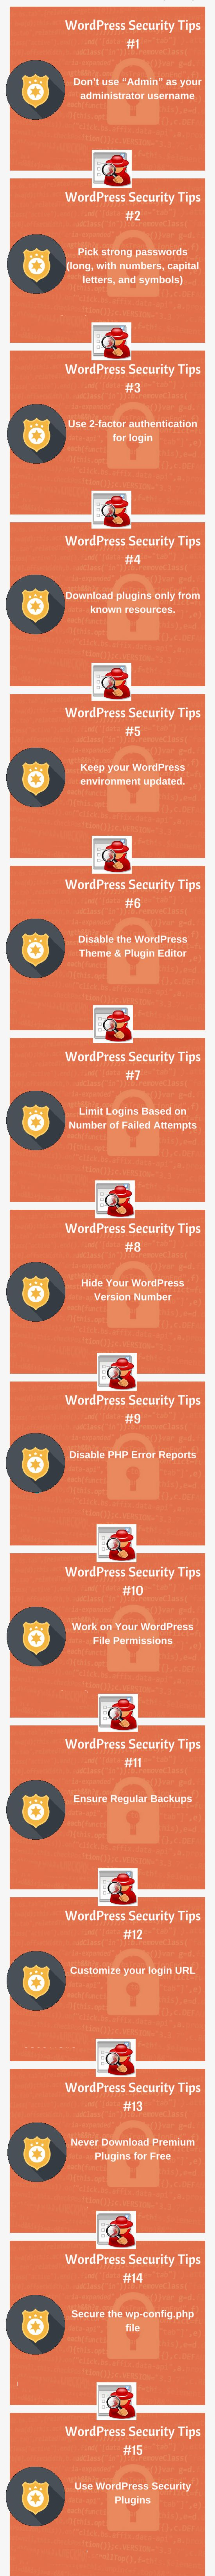 Top 15 WordPress Website Security Tips - Step by Step July 2018